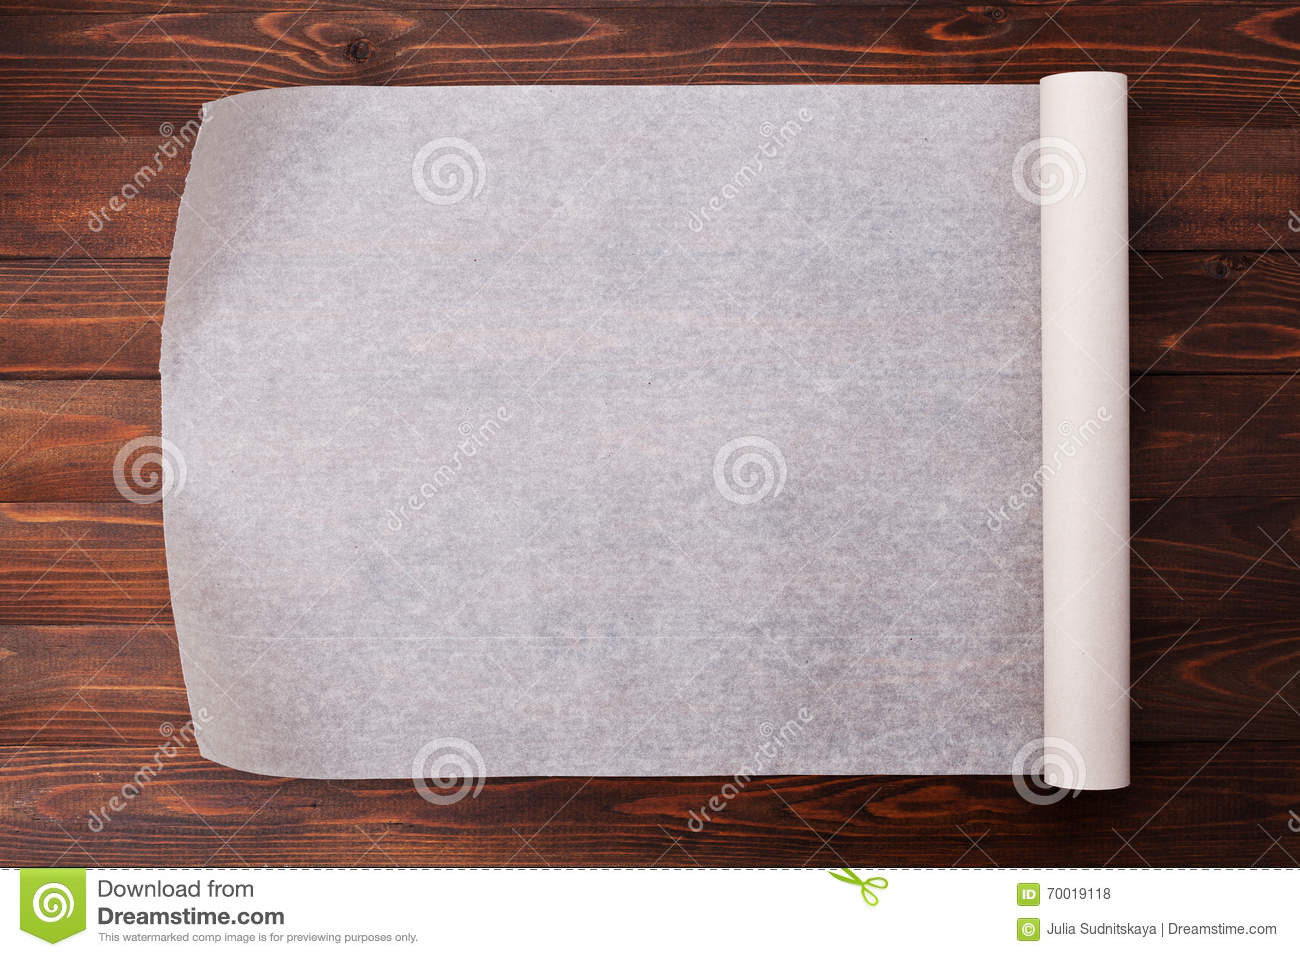 The Kitchen Table Menu Baking Paper On Wooden Kitchen Table For Menu Or Recipes Stock